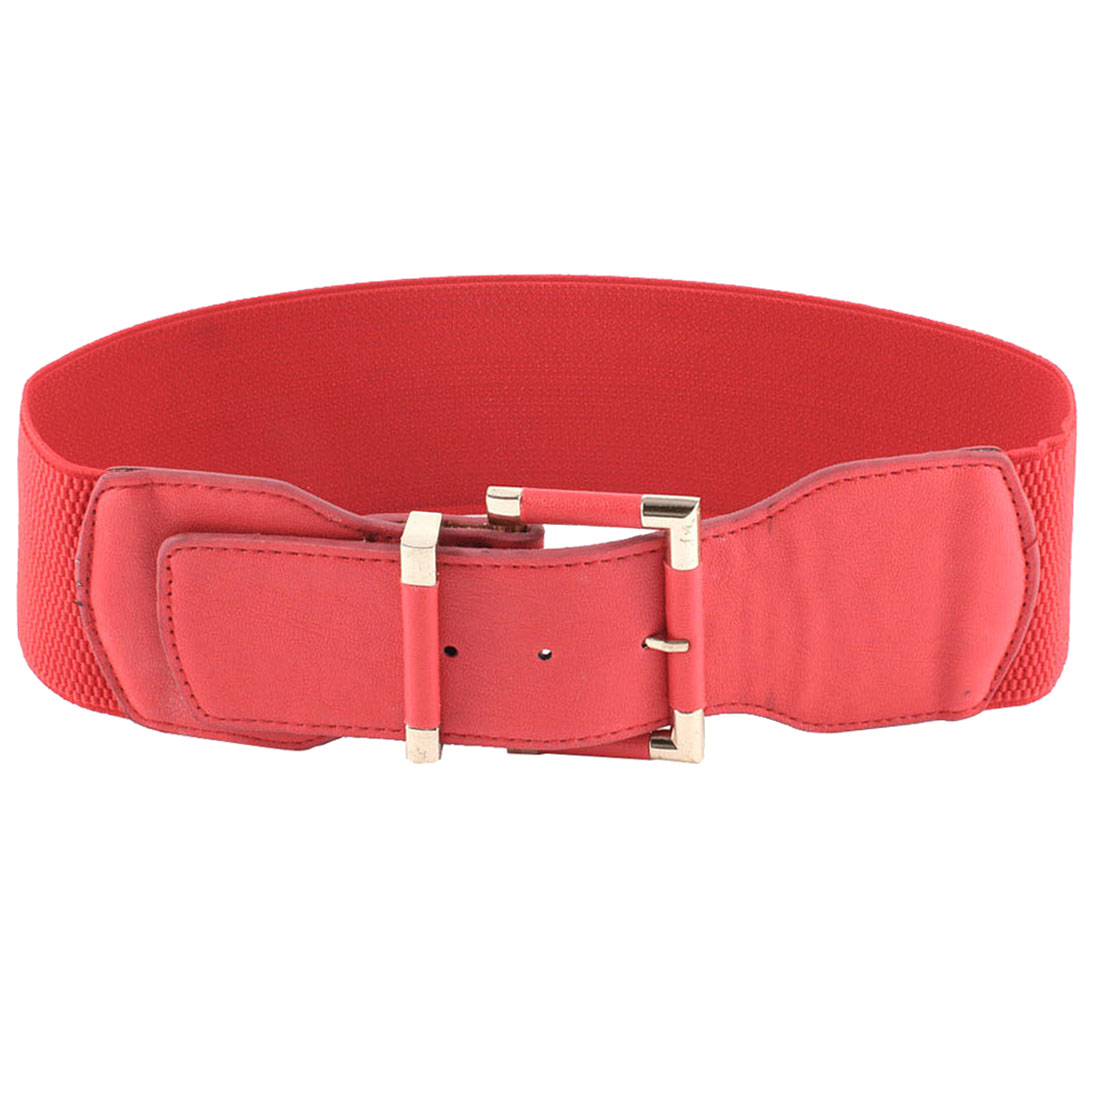 Women Single Prong Buckle Red Elastic Waist Band Belt Waistband Gift